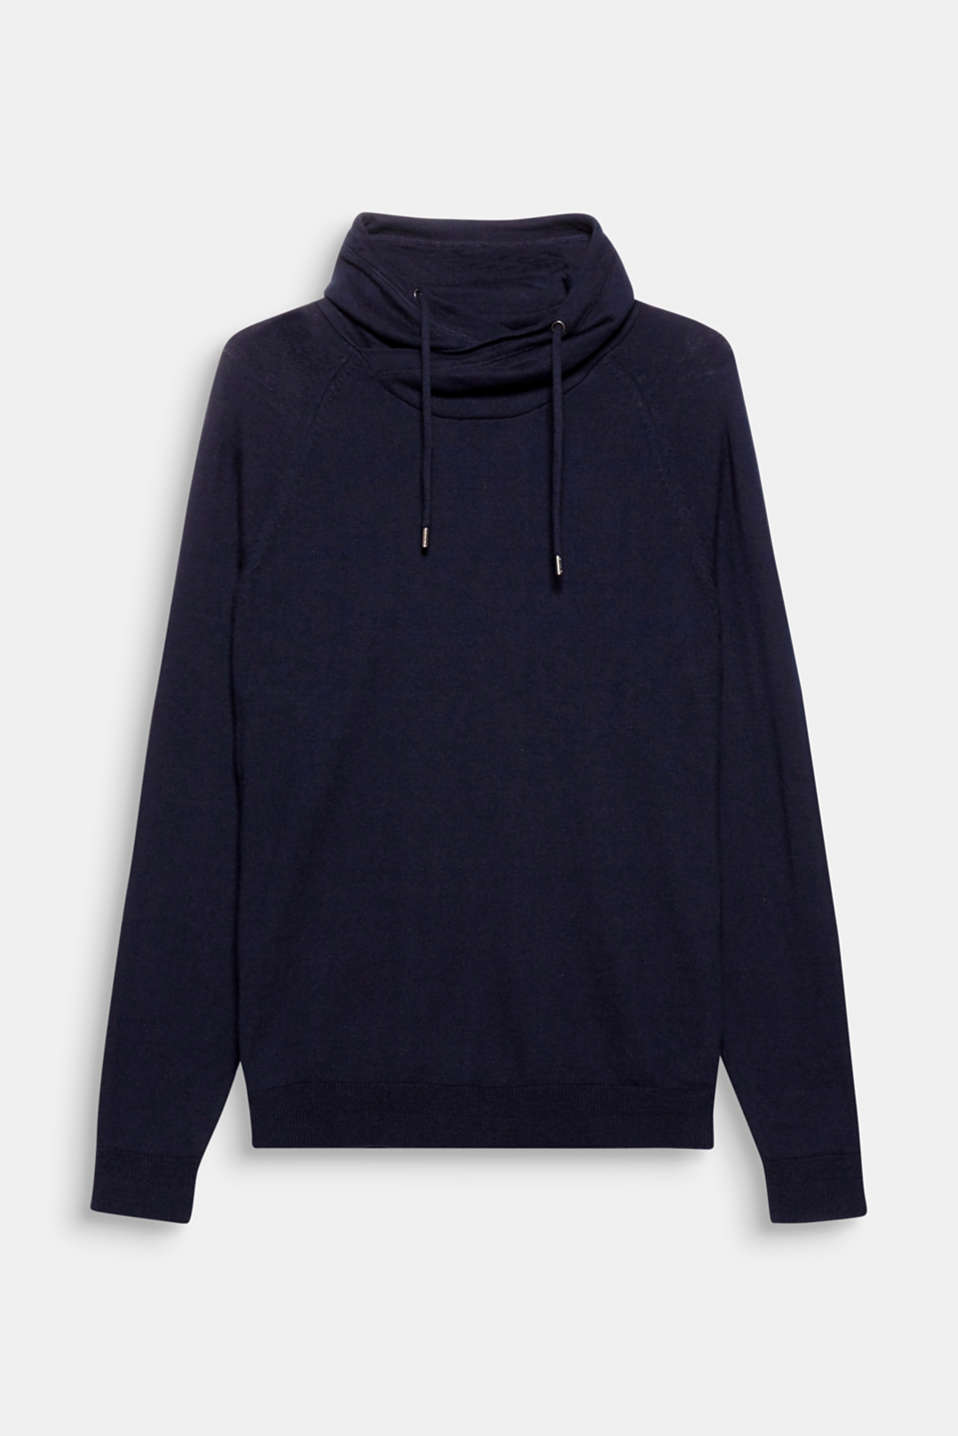 An elegant update for your leisure look: fine knit hoodie with a percentage of cashmere.